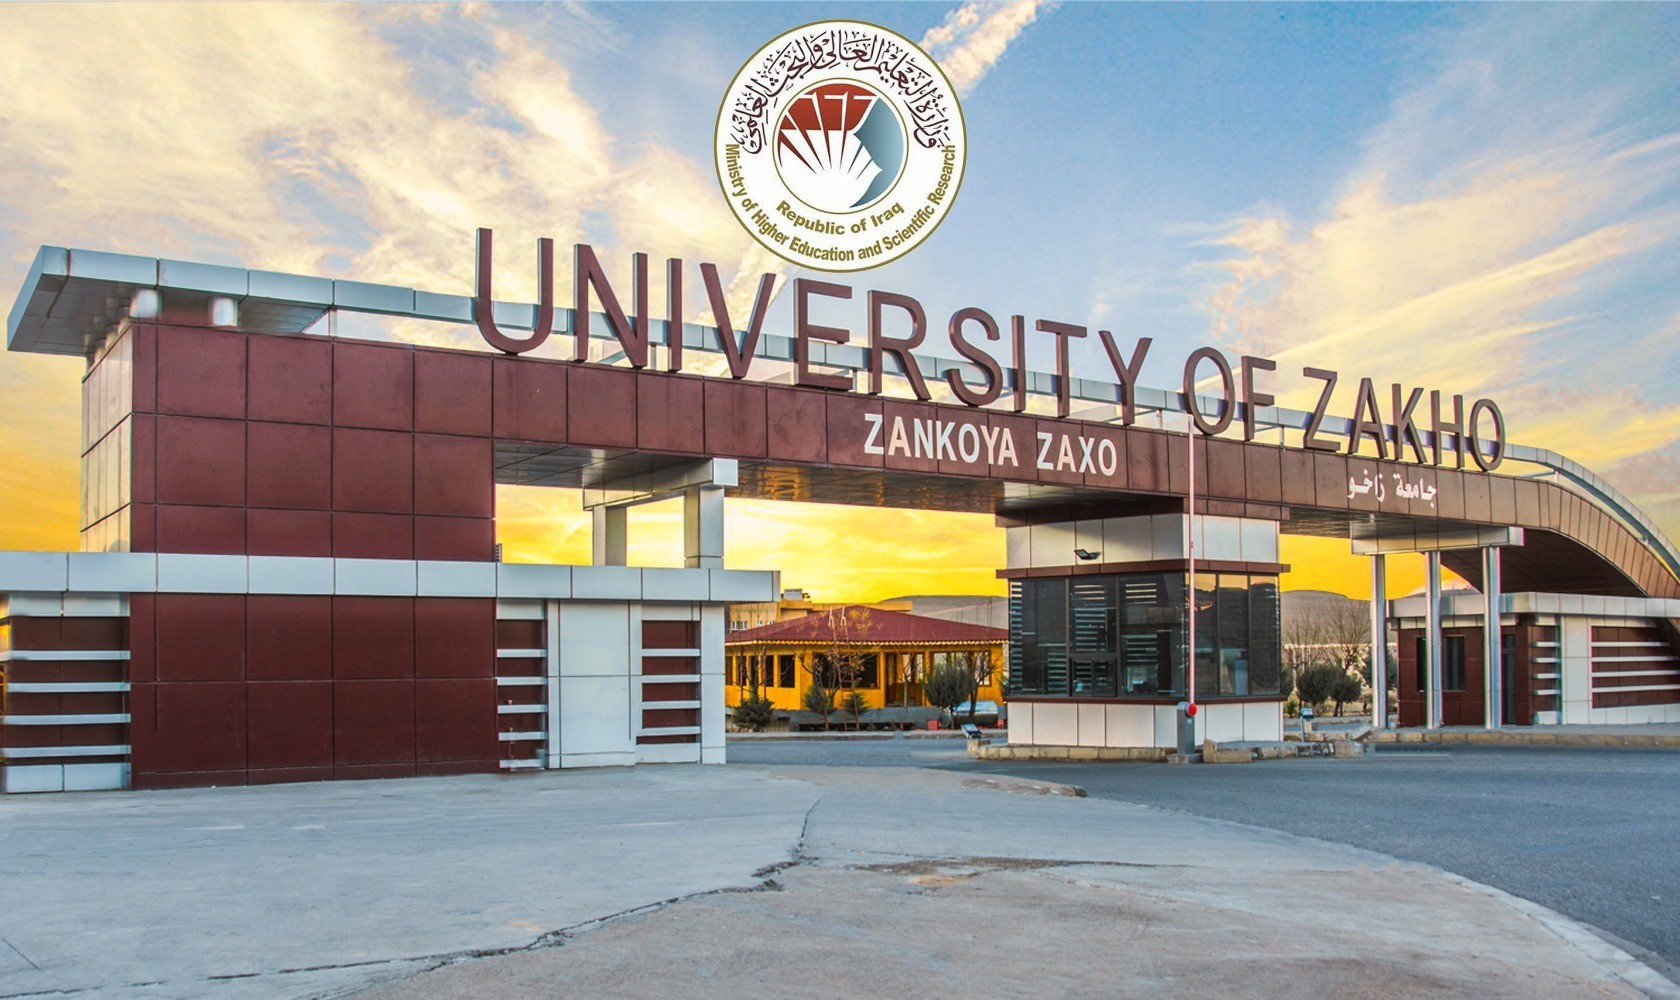 University Of Zakho Has Been Officially Admitted By The Iraqi Ministry of Higher Education & Scientific Research